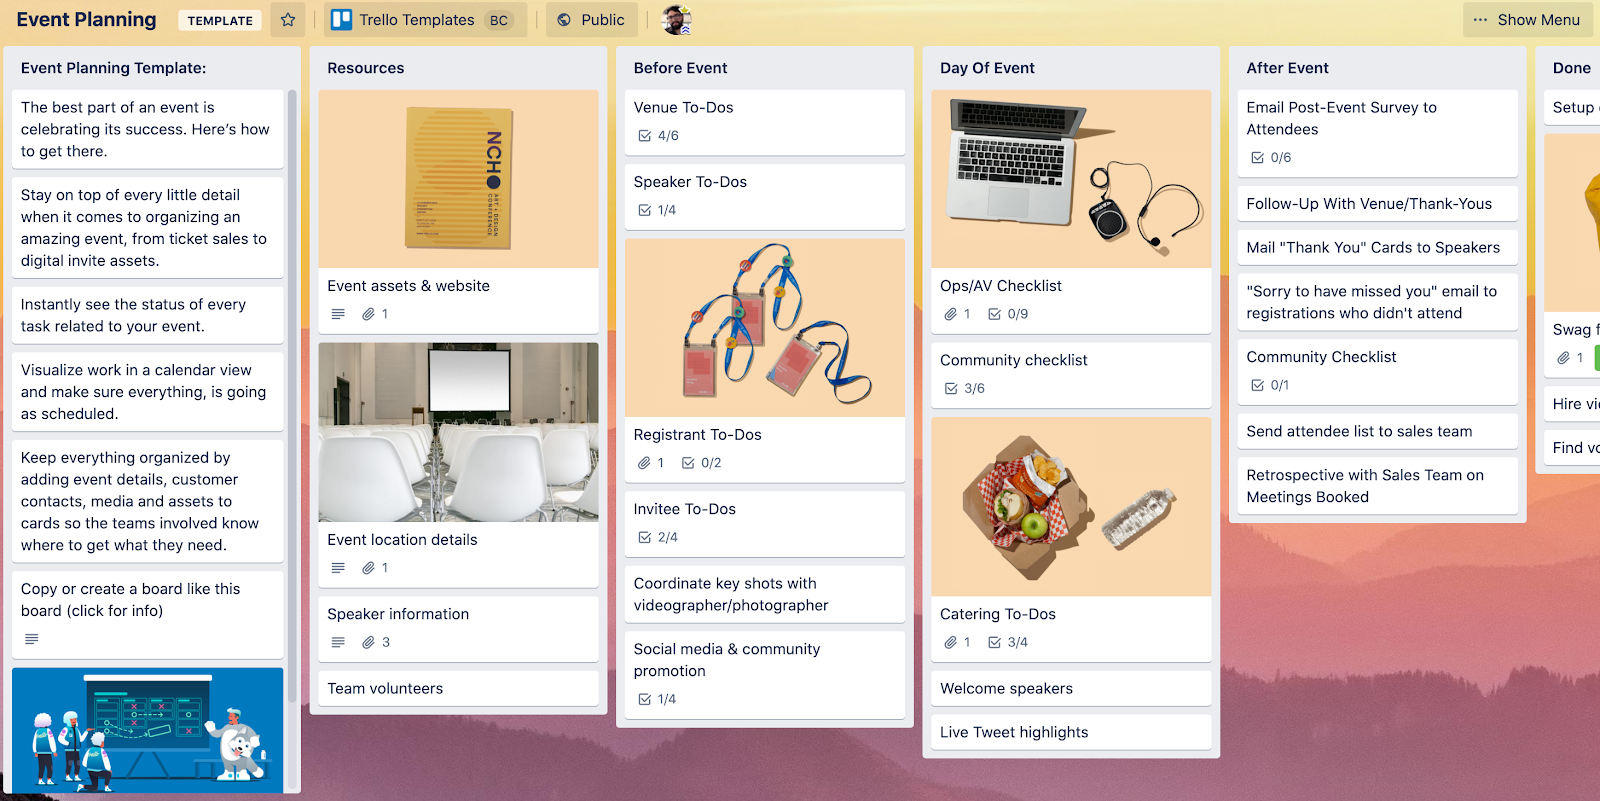 event planning template in Trello